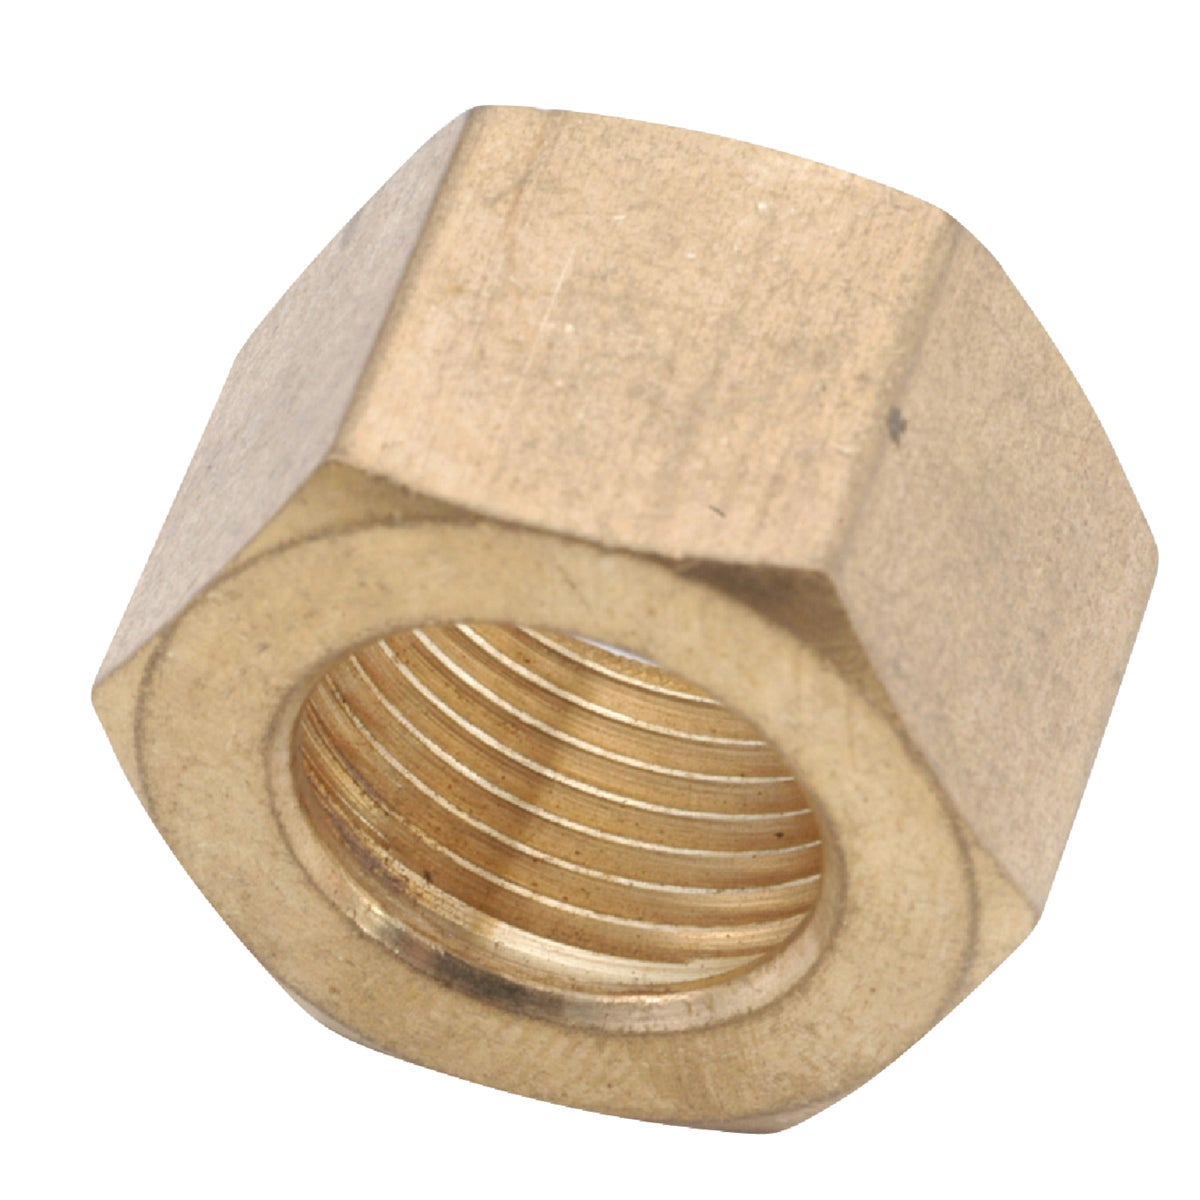 "1/8"" COMPRESSION NUT - 30061-02 by Anderson Metals Corp"